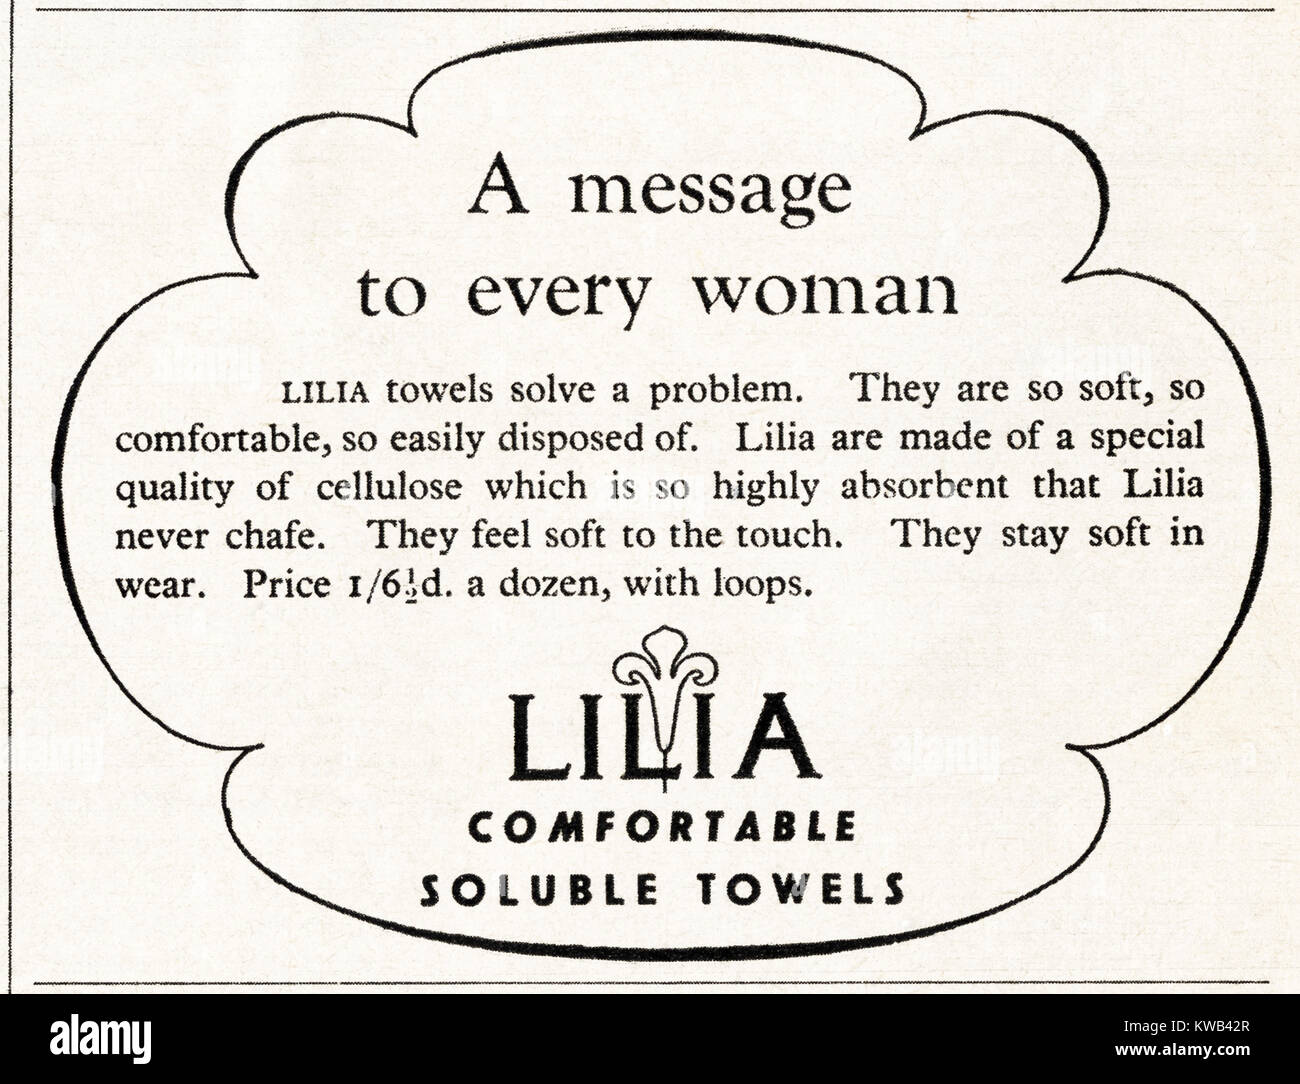 1940s old vintage original advert advertising Lilia sanitary towels in magazine circa 1947 when supplies were still - Stock Image